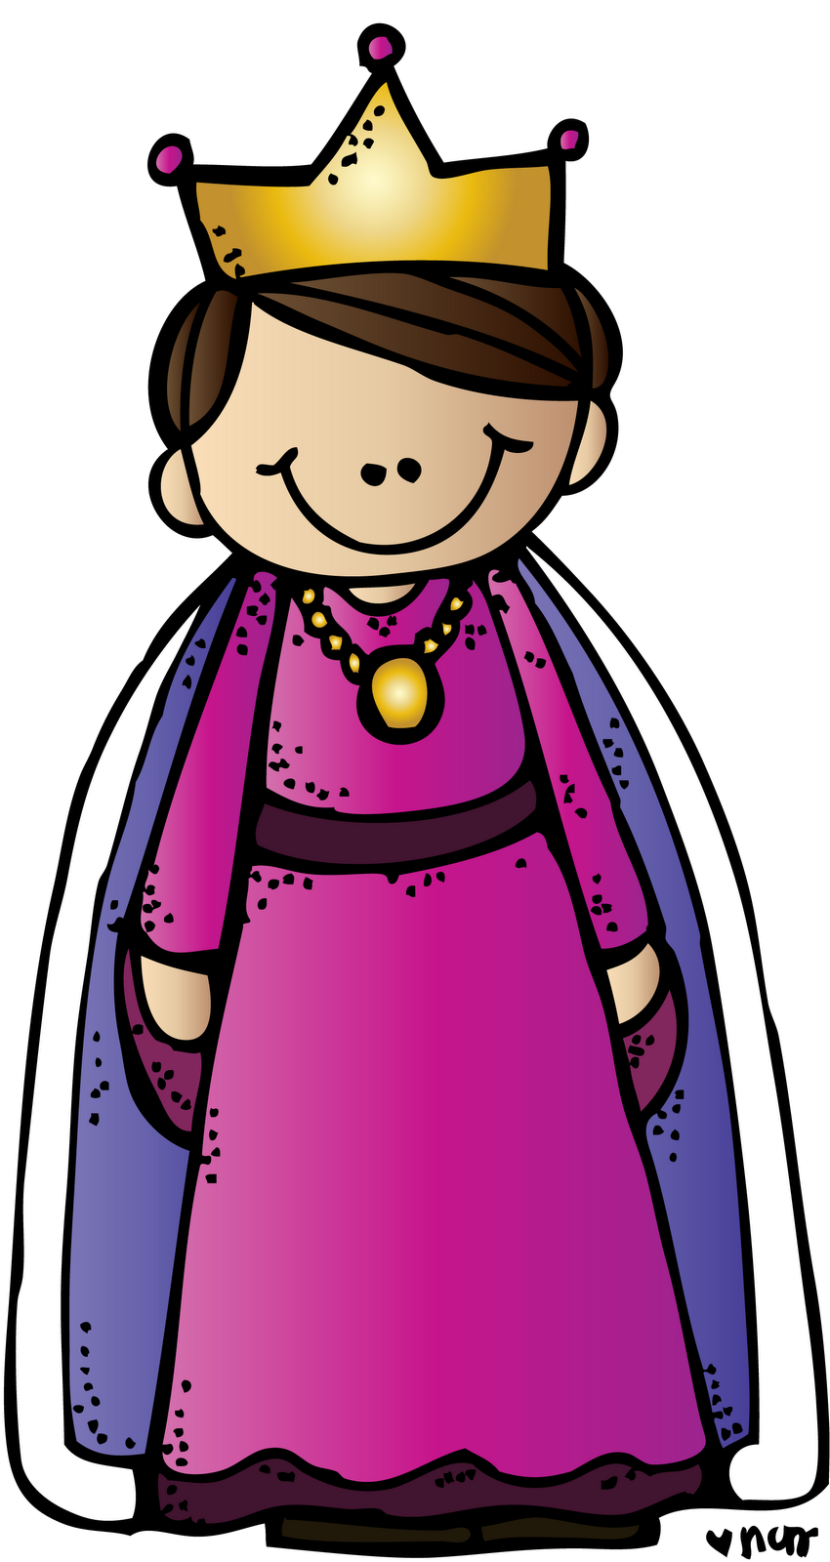 King clipart kid.  collection of no